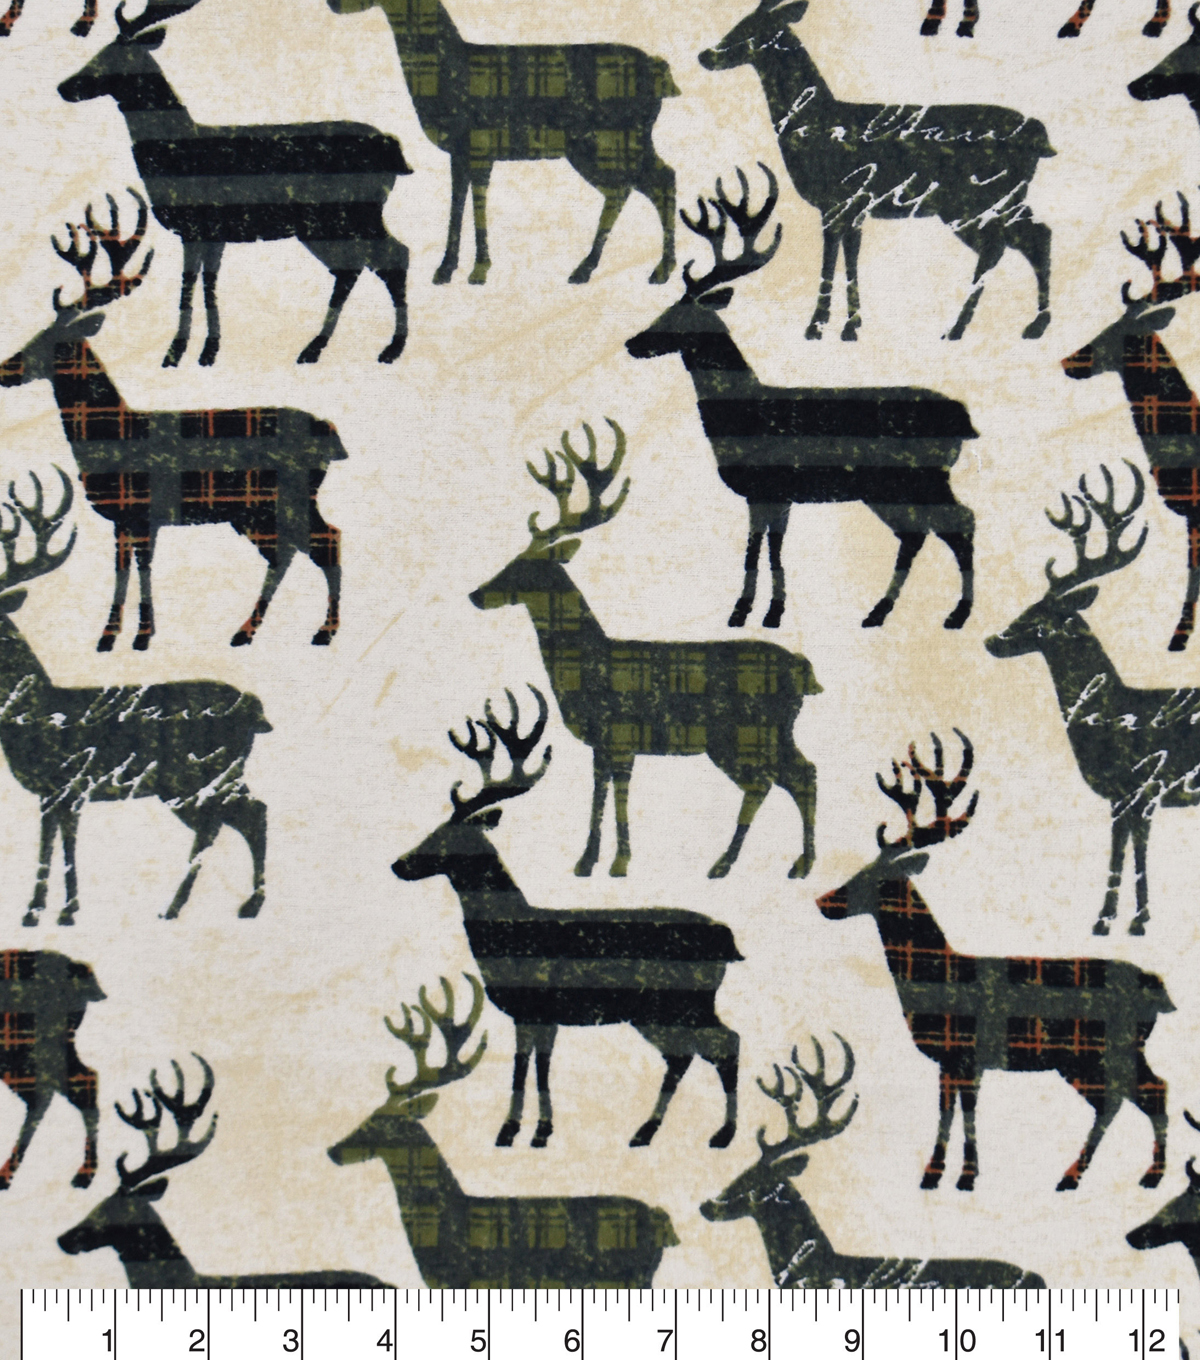 Snuggle Flannel Fabric -Autumn Patterned Animals